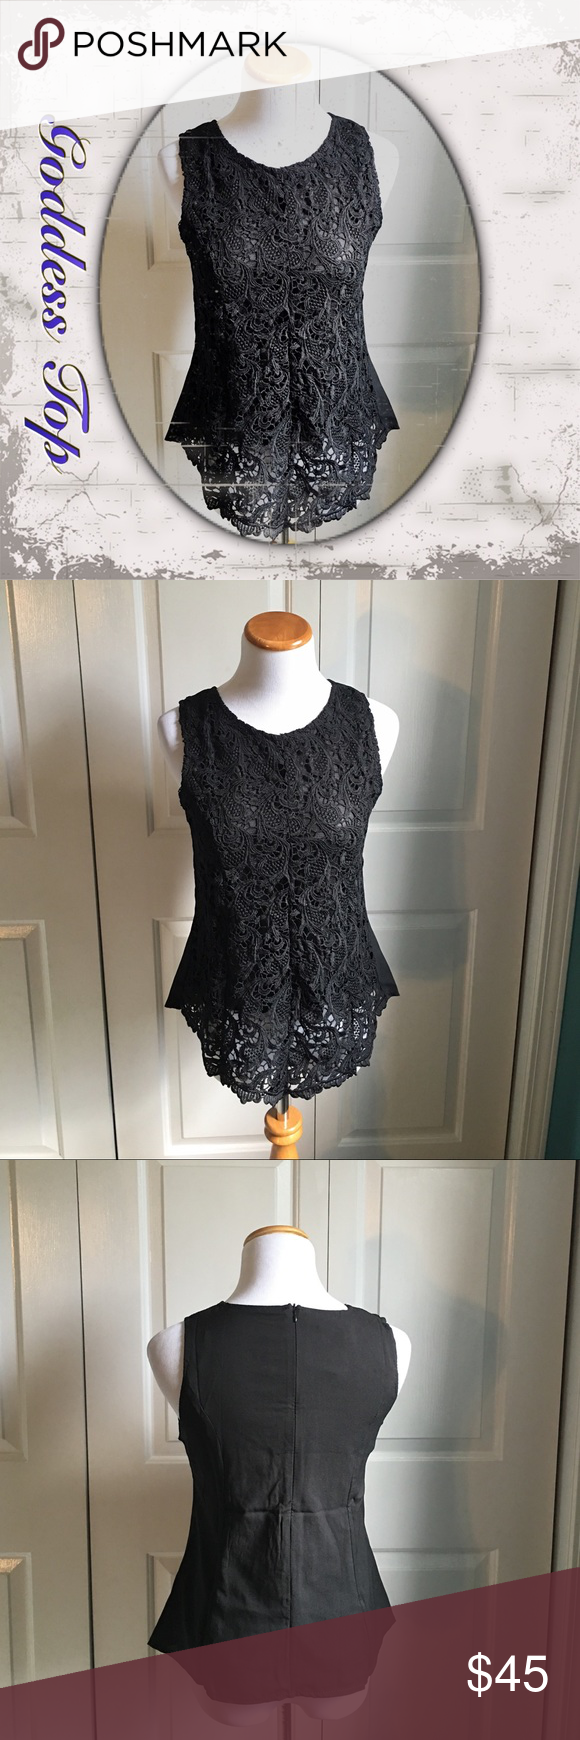 """Goddess Top A top so beautiful it could only be called the Goddess top! Wear it as a blouse for work, or dress it down with some jeans. Very versatile.Black crotchet detail in front, and fully lined. Zip up back. Chiffon back. Small has a bust of 34"""", medium 35.5"""", large 37"""". Sits at hip. Runs true to size. Brand new with tags. Tops"""